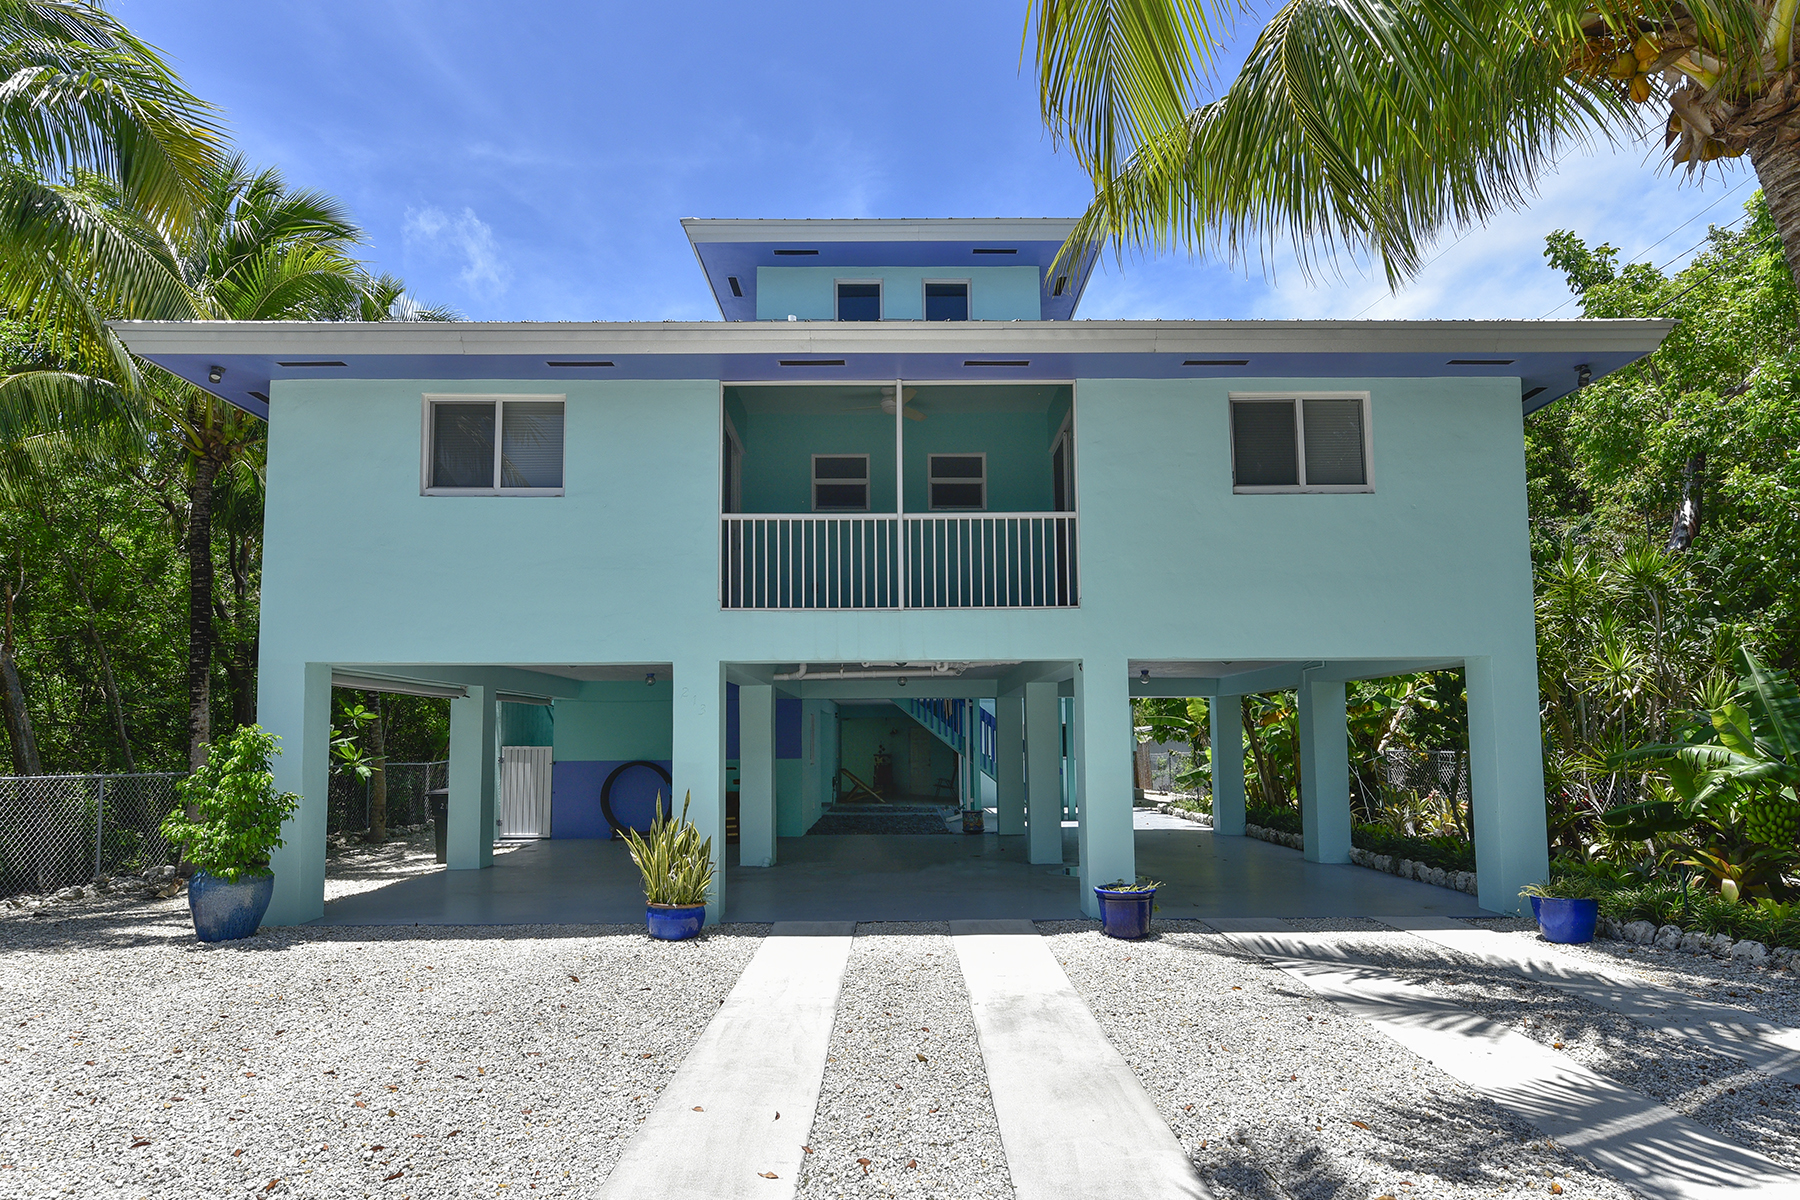 Flerfamiljshus för Försäljning vid Desirable Port Largo Location 213 Atlantic Blvd Key Largo, Florida 33037 Usa